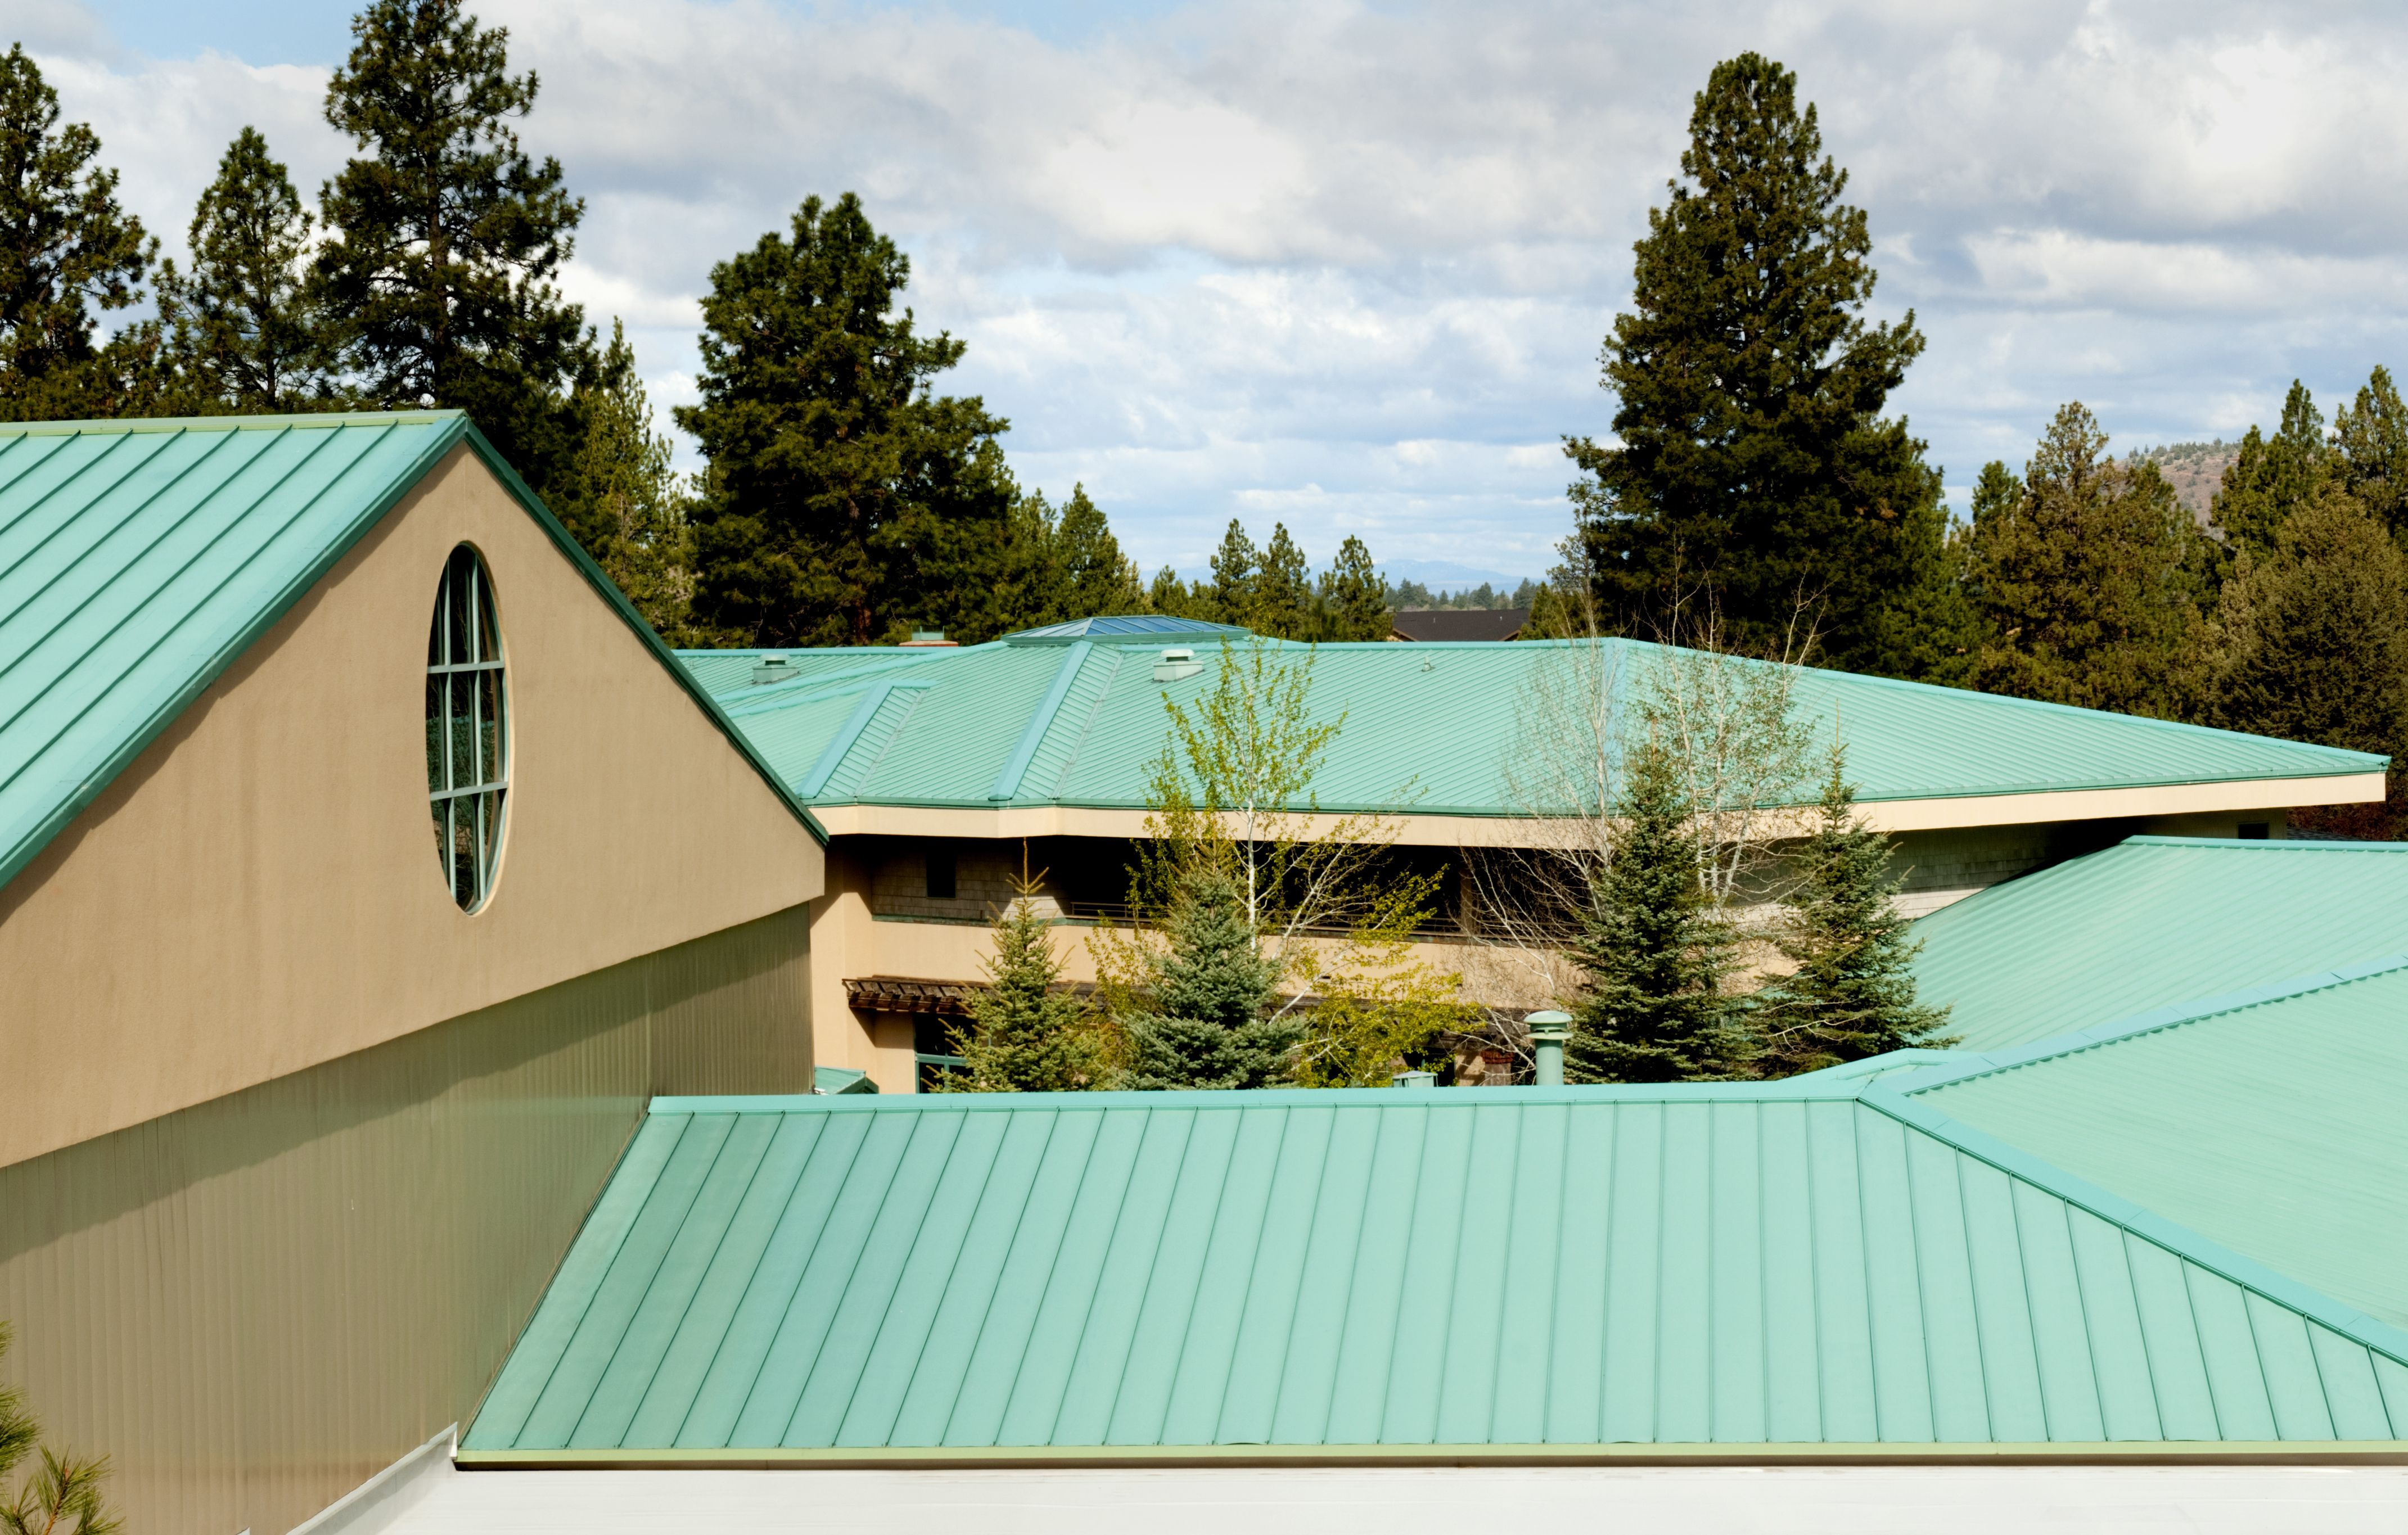 How To Overlap Metal Roofing Building Maintenance Metal Roof Roofing